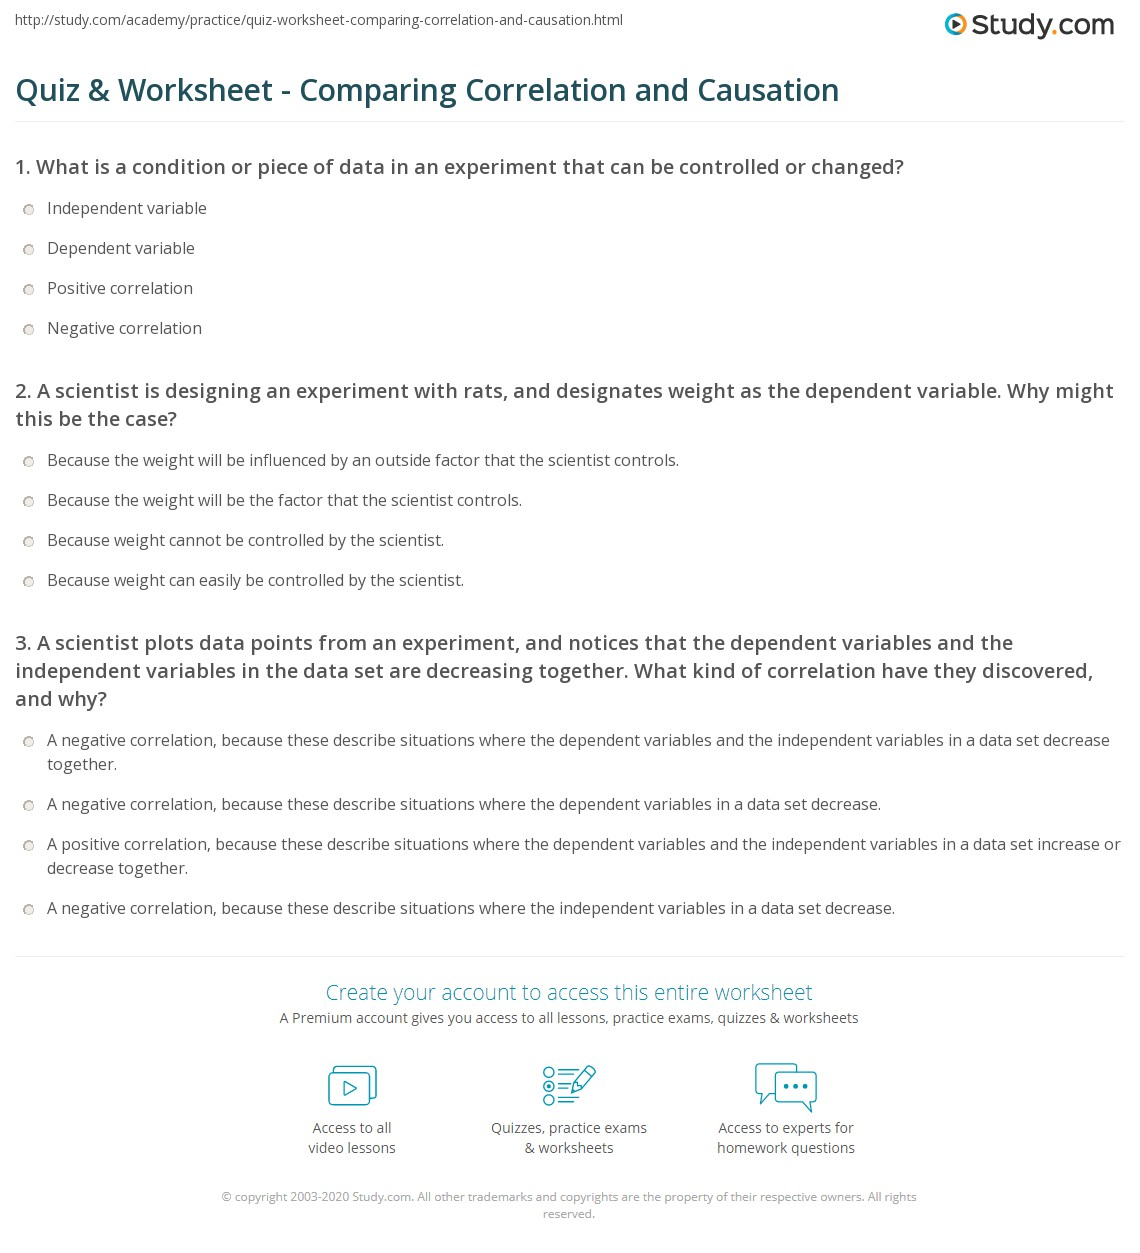 Aldiablosus  Personable Quiz Amp Worksheet  Comparing Correlation And Causation  Studycom With Lovely Print Correlation Vs Causation Differences Amp Definition Worksheet With Divine Skip Counting Worksheets Grade  Also Toys Worksheets Ks In Addition Writing Numbers  Worksheet And Missing Angles In Triangles And Quadrilaterals Worksheets As Well As Hop On Pop Worksheets Additionally Worksheet For Balancing Chemical Equations From Studycom With Aldiablosus  Lovely Quiz Amp Worksheet  Comparing Correlation And Causation  Studycom With Divine Print Correlation Vs Causation Differences Amp Definition Worksheet And Personable Skip Counting Worksheets Grade  Also Toys Worksheets Ks In Addition Writing Numbers  Worksheet From Studycom